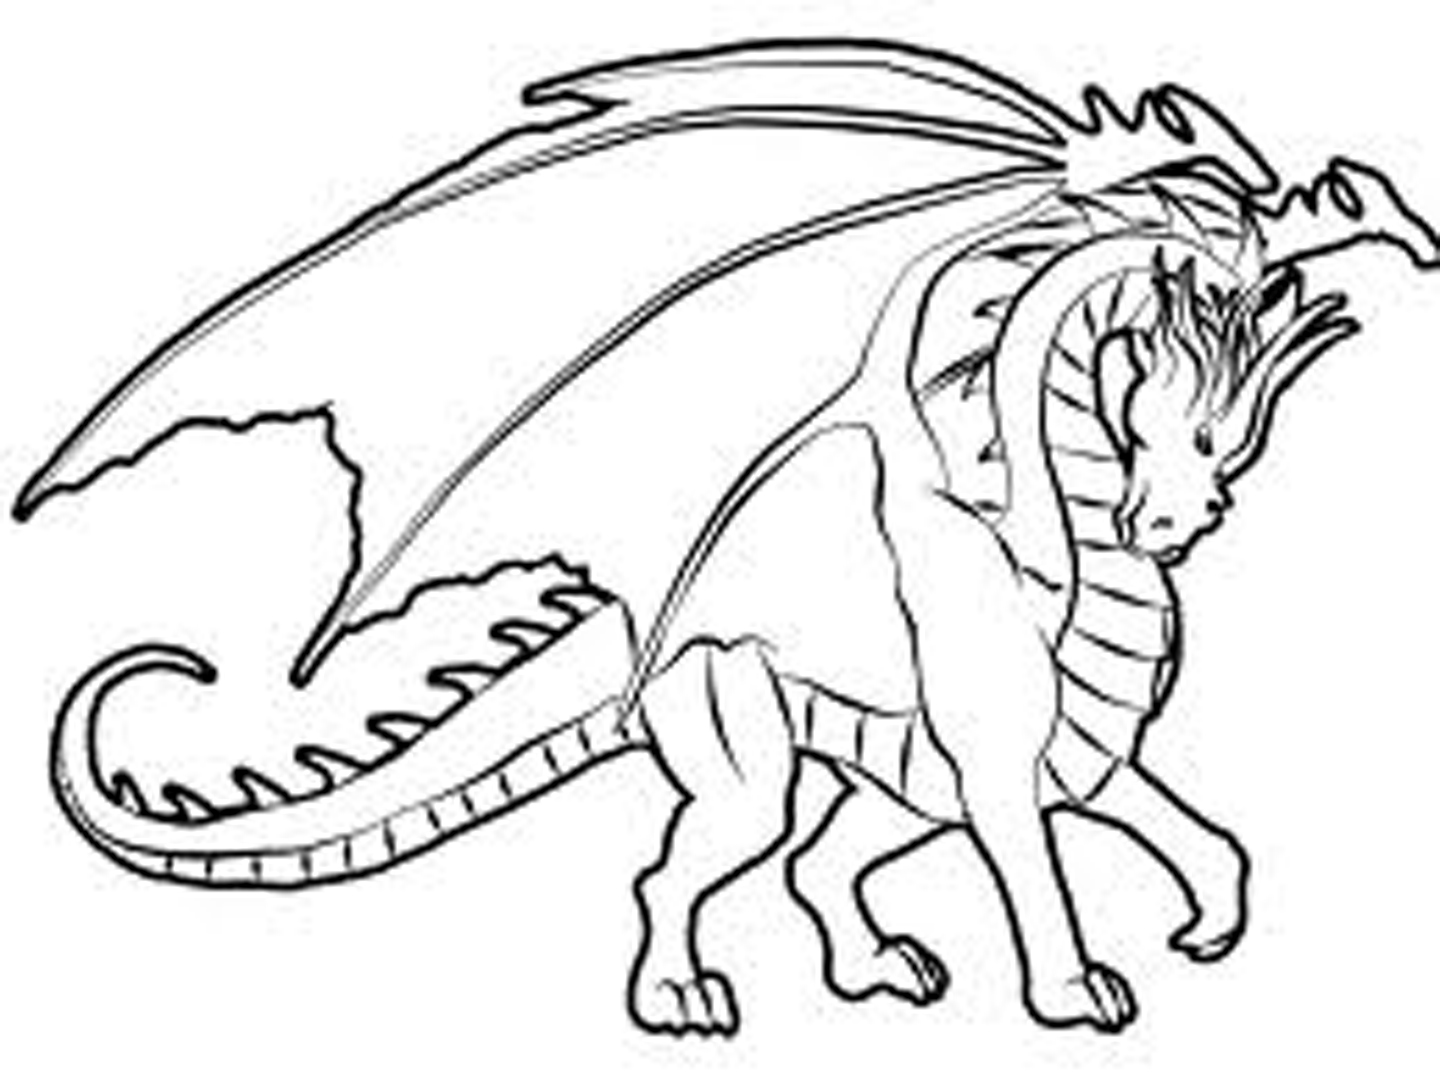 www coloring pages for kids | T-shirt logo design creative ideas: Coloring Pages For Kids